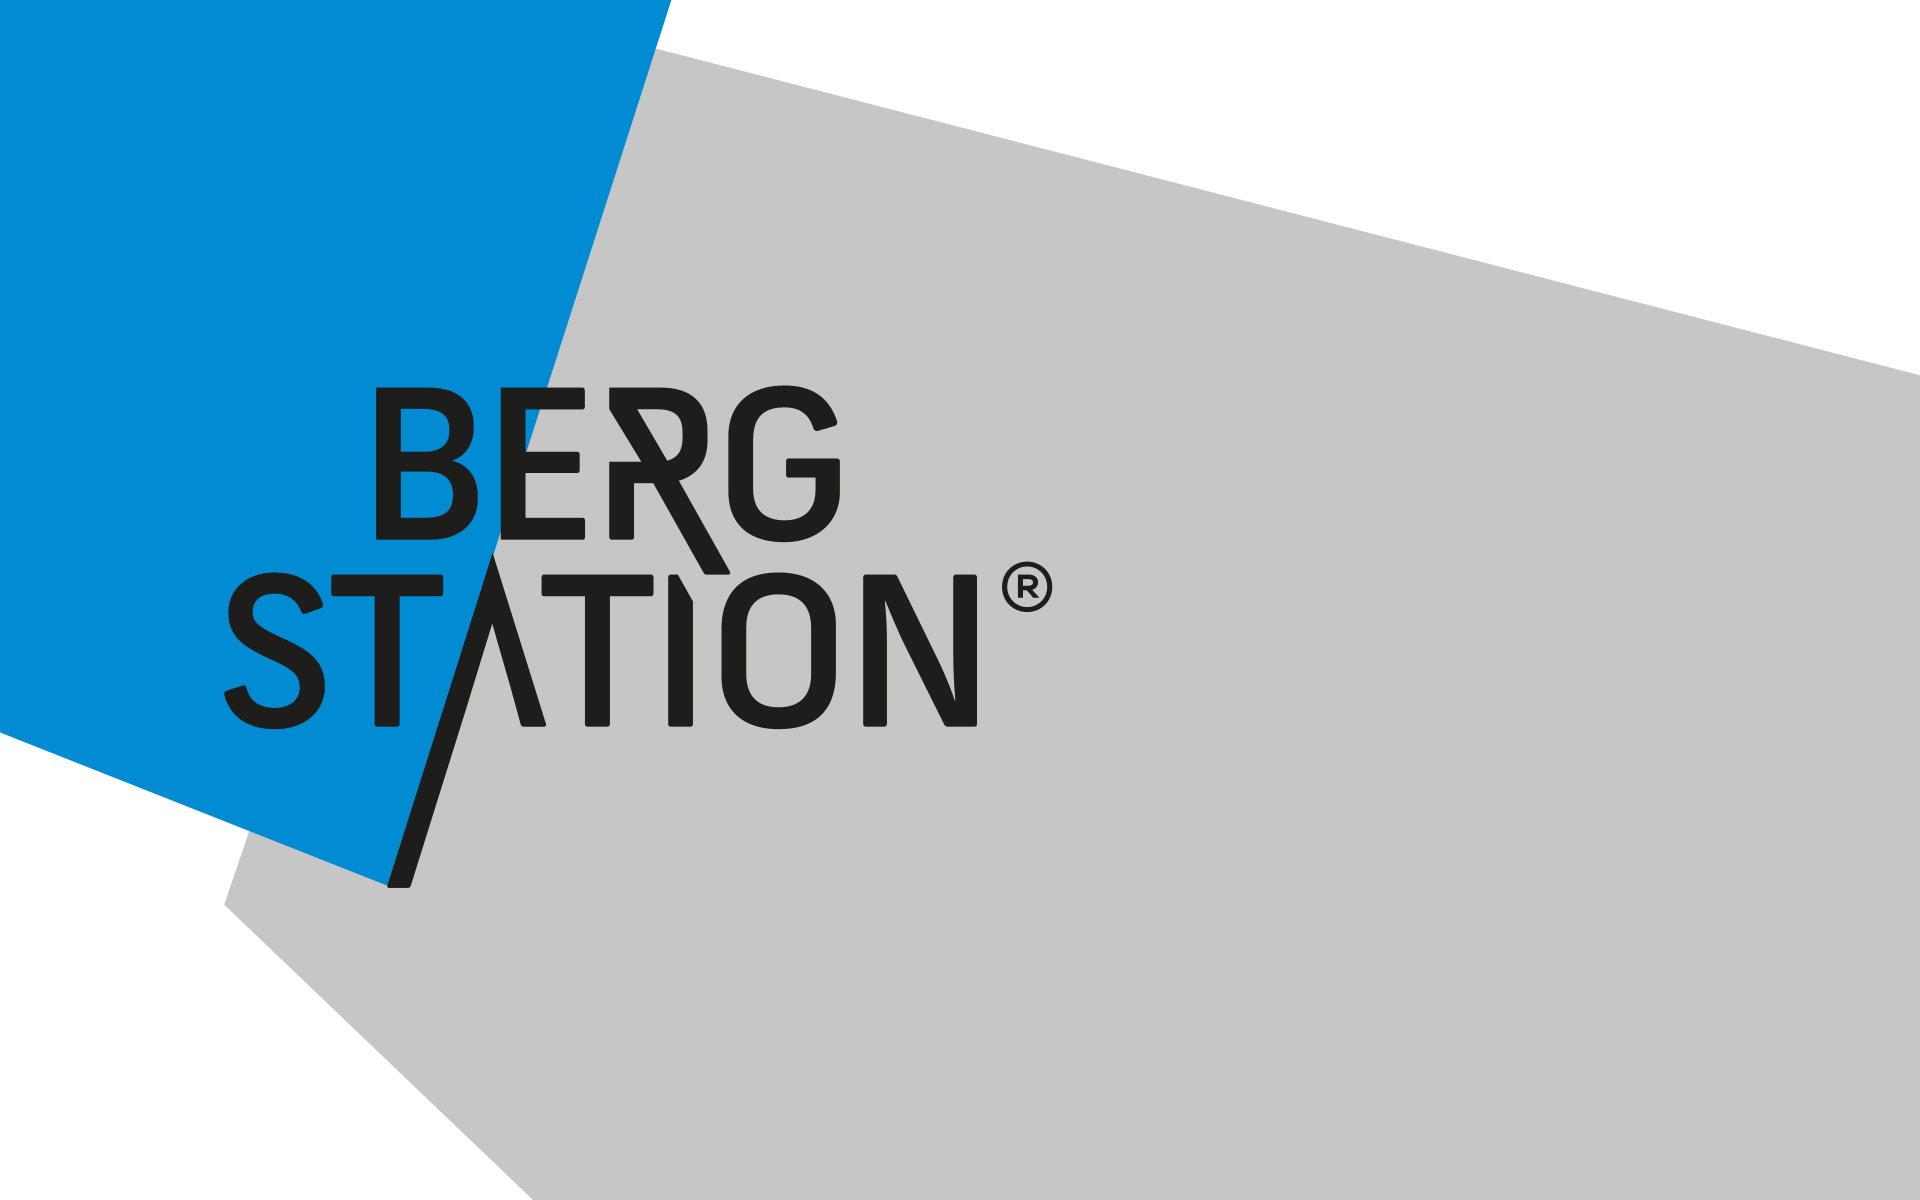 Bergstation Corporate Design, Logo und Formensprache